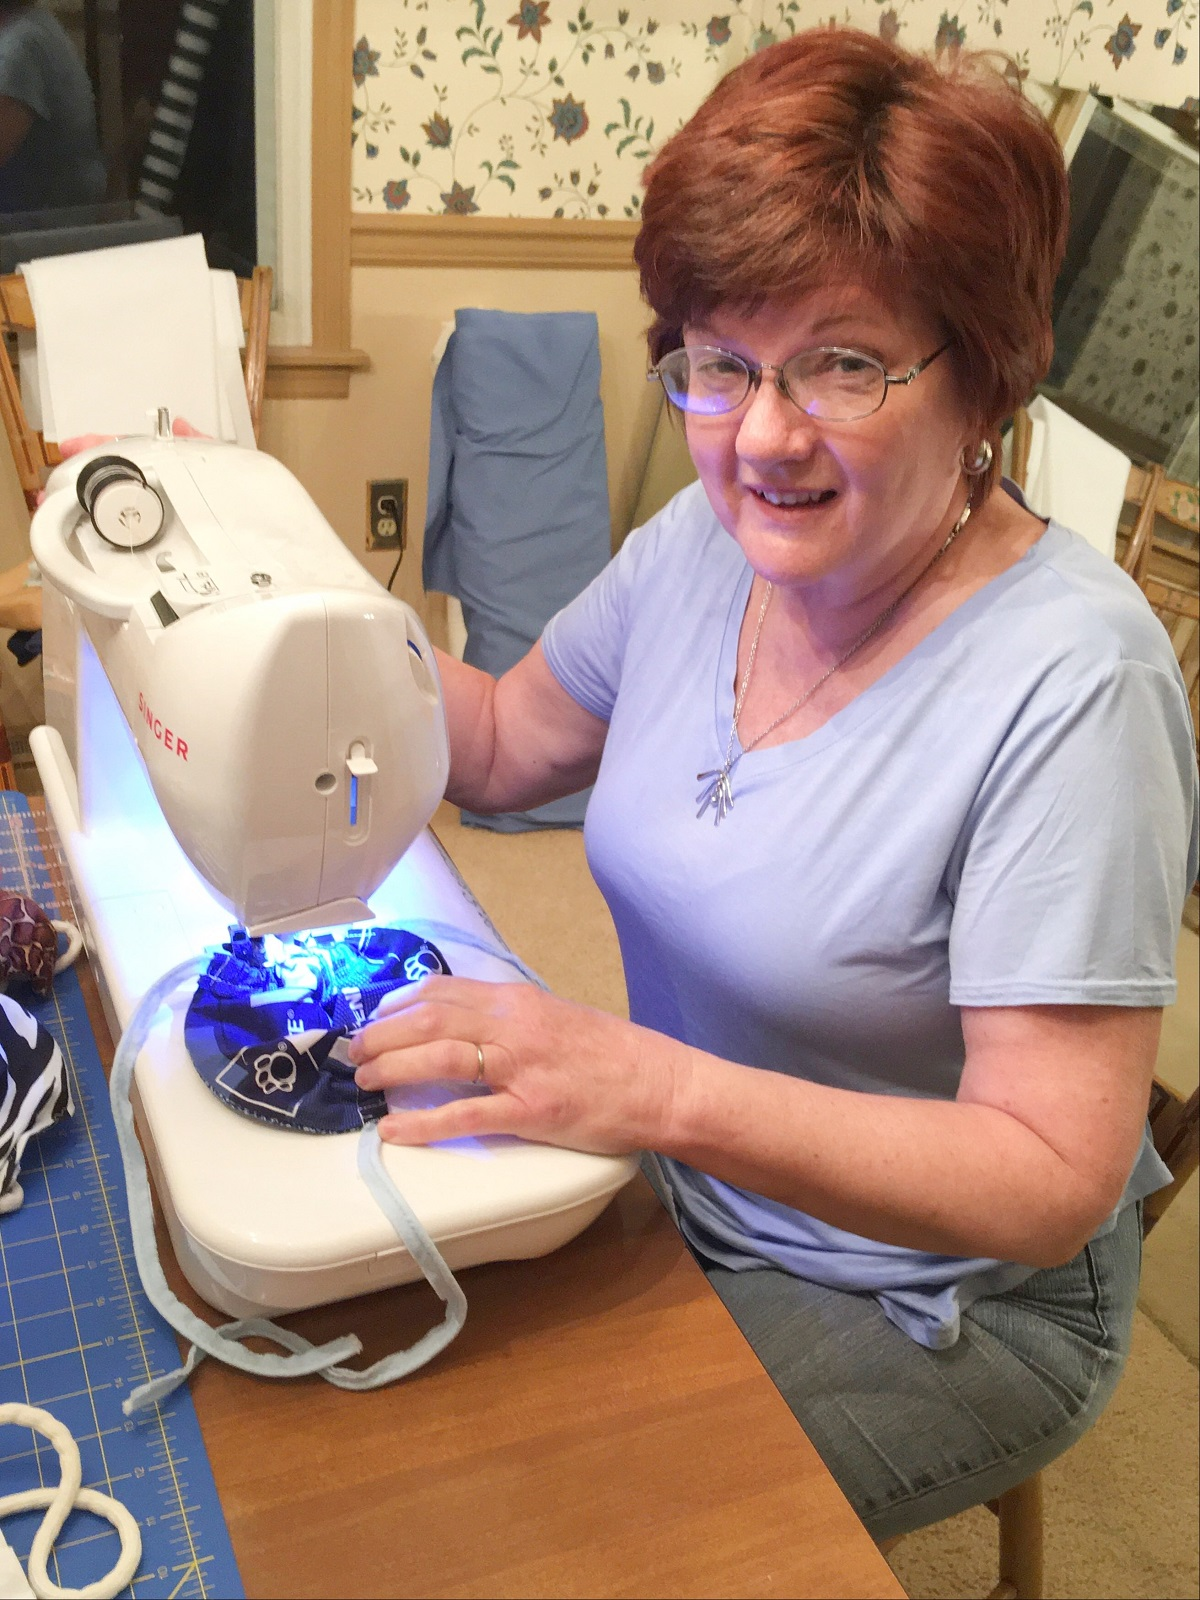 Director of volunteer services Barbara Moyer sits at her sewing machine as she makes a face mask. She is wearing a purple short sleeve shirt, gray pants and glasses.